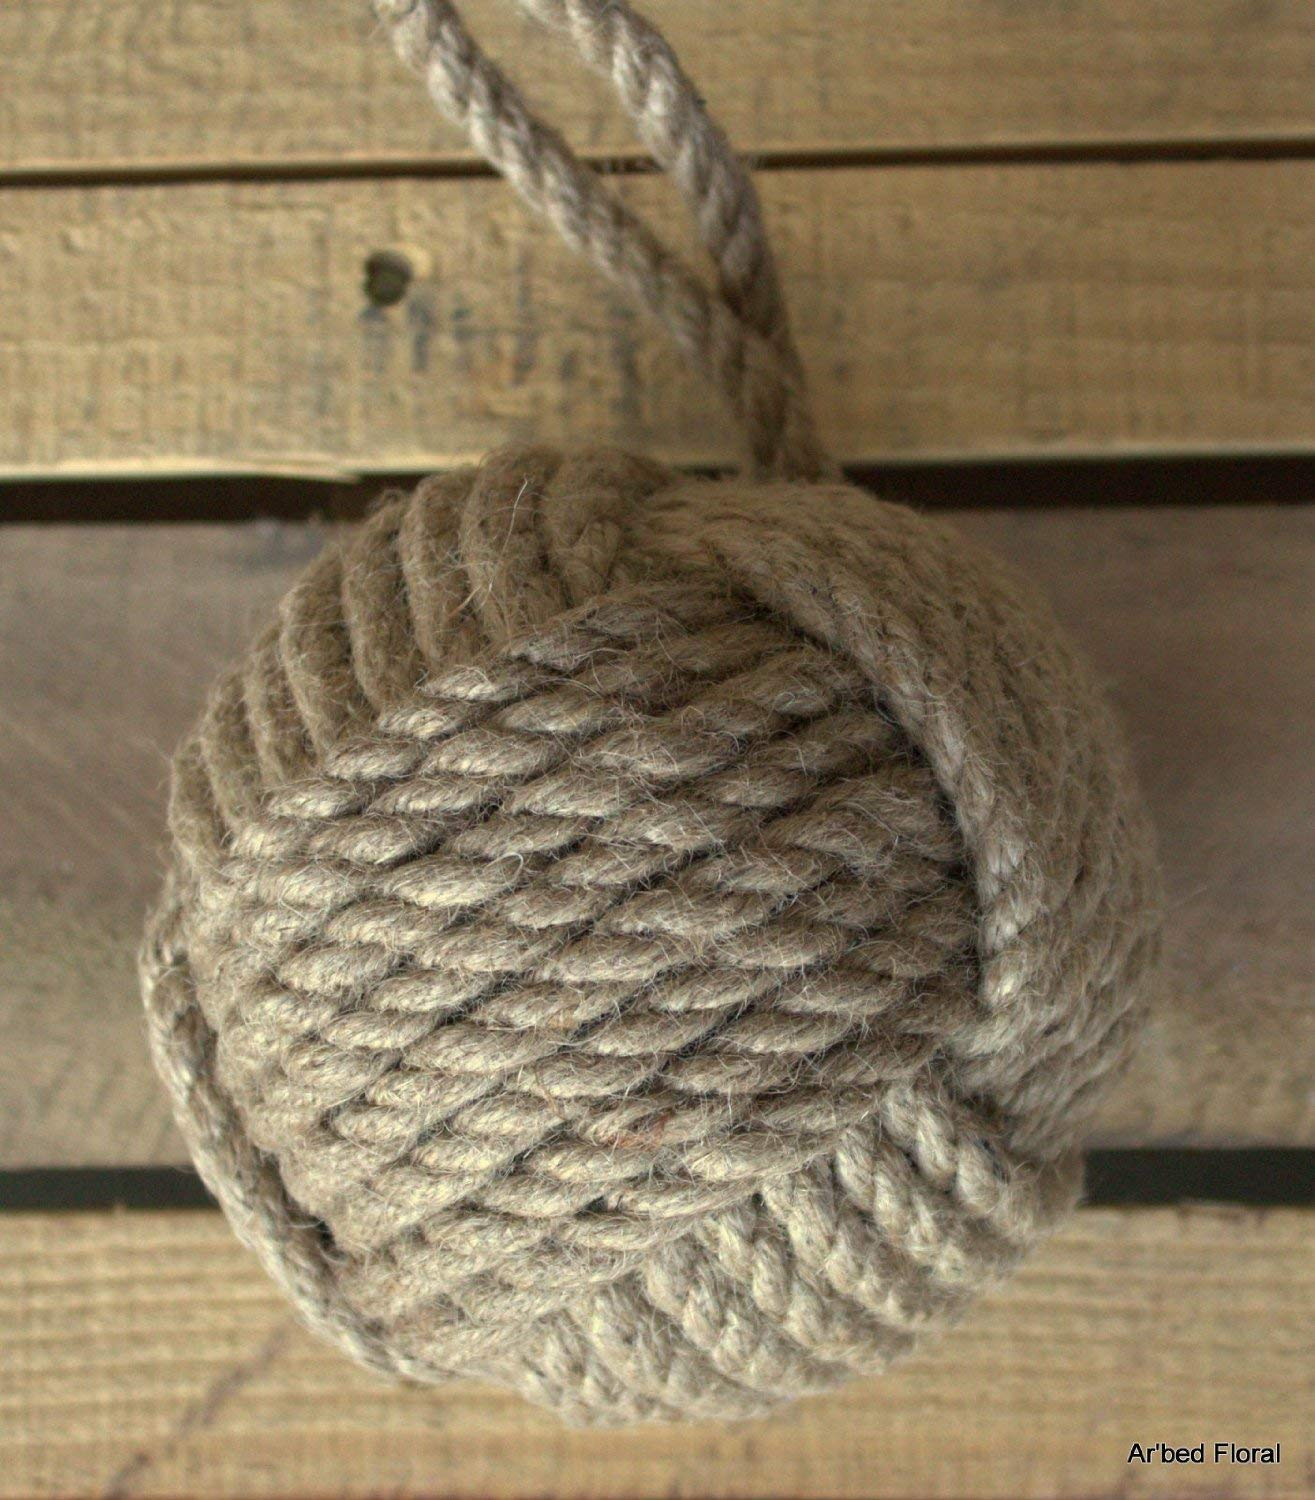 YourKart 5 Monkey Fist Nautical Doorstop Natural Jute Rope Sailor Knot